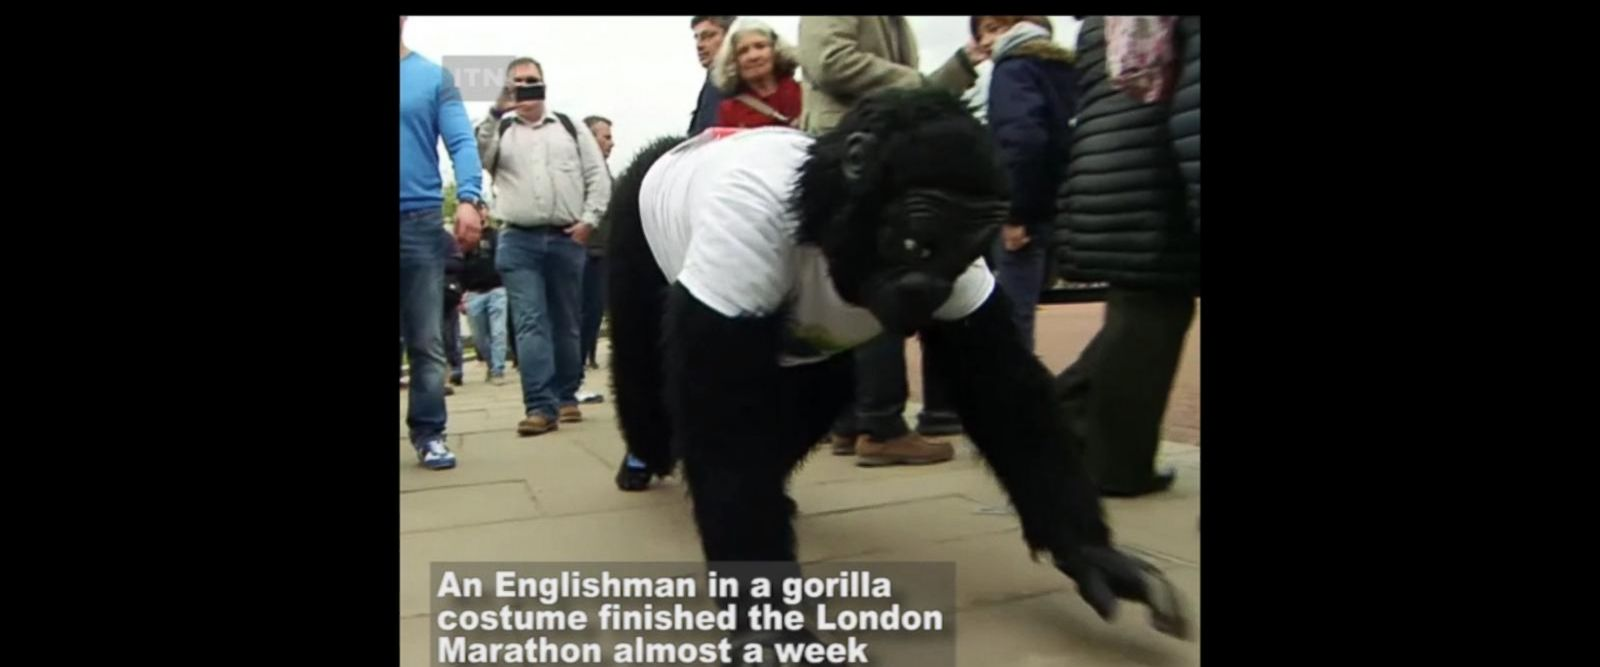 VIDEO: Englishman in gorilla costume finishes London Marathon after 6 days